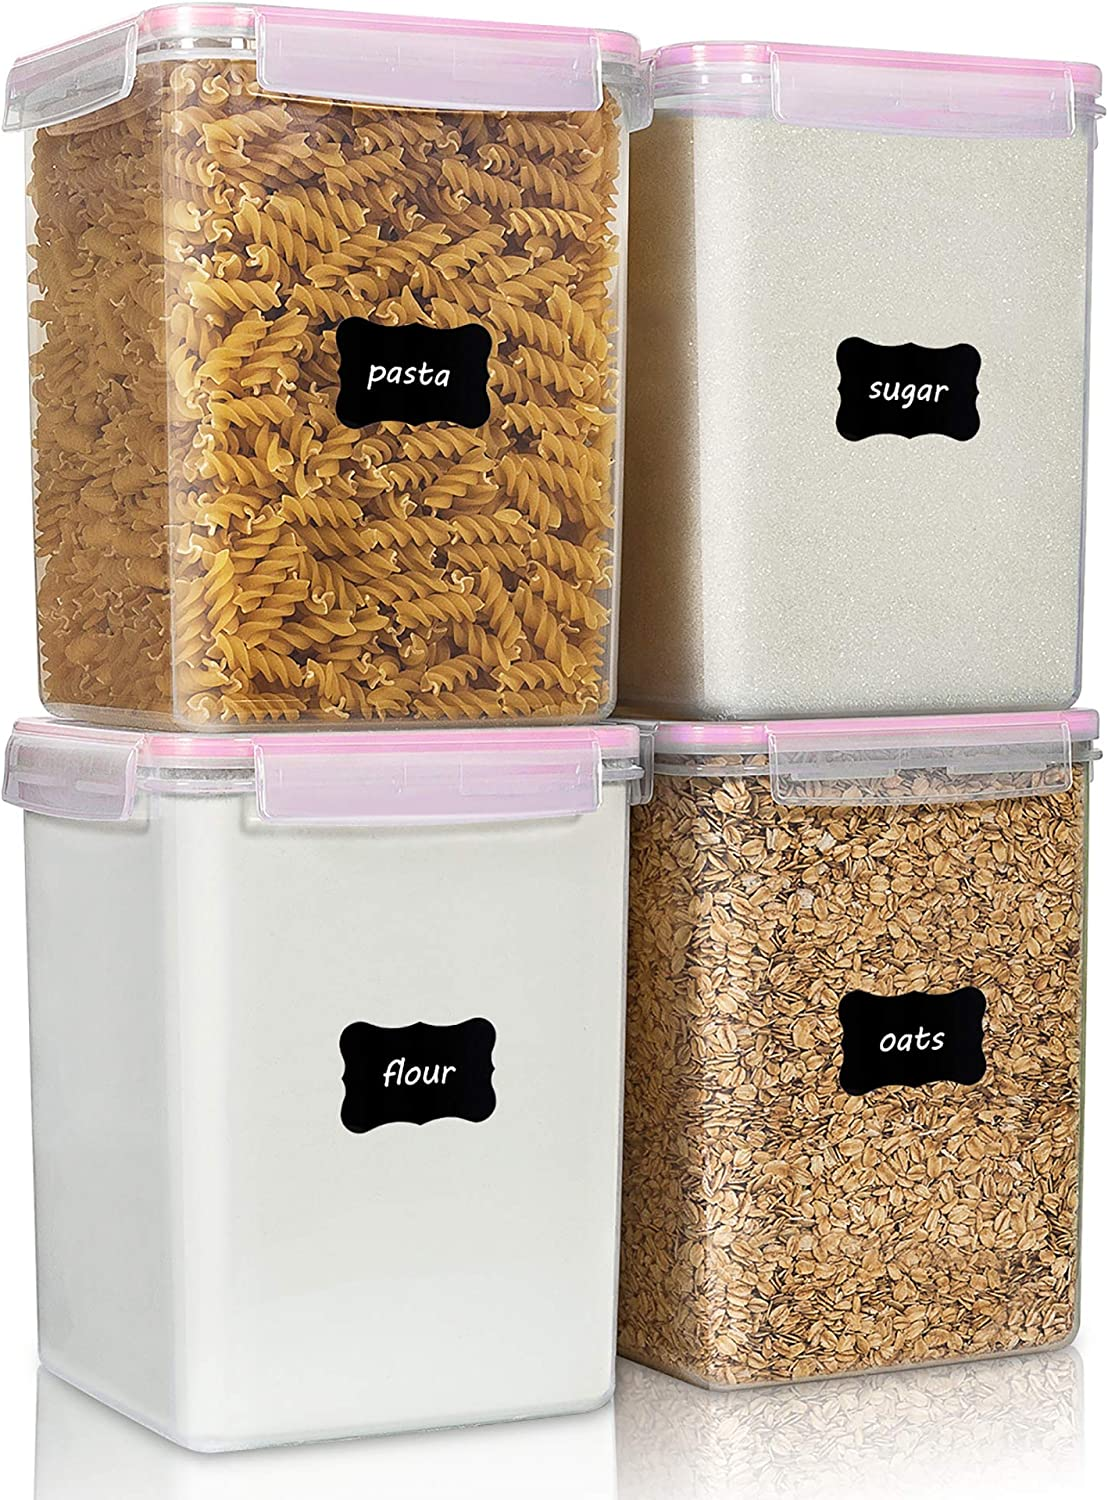 Large Food Storage Containers 5.2L / 176oz, Vtopmart 4 Pieces BPA Free Plastic Airtight Food Storage Containers for Flour, Sugar, Baking Supplies, with 4 Measuring Cups and 24 Labels, Pink